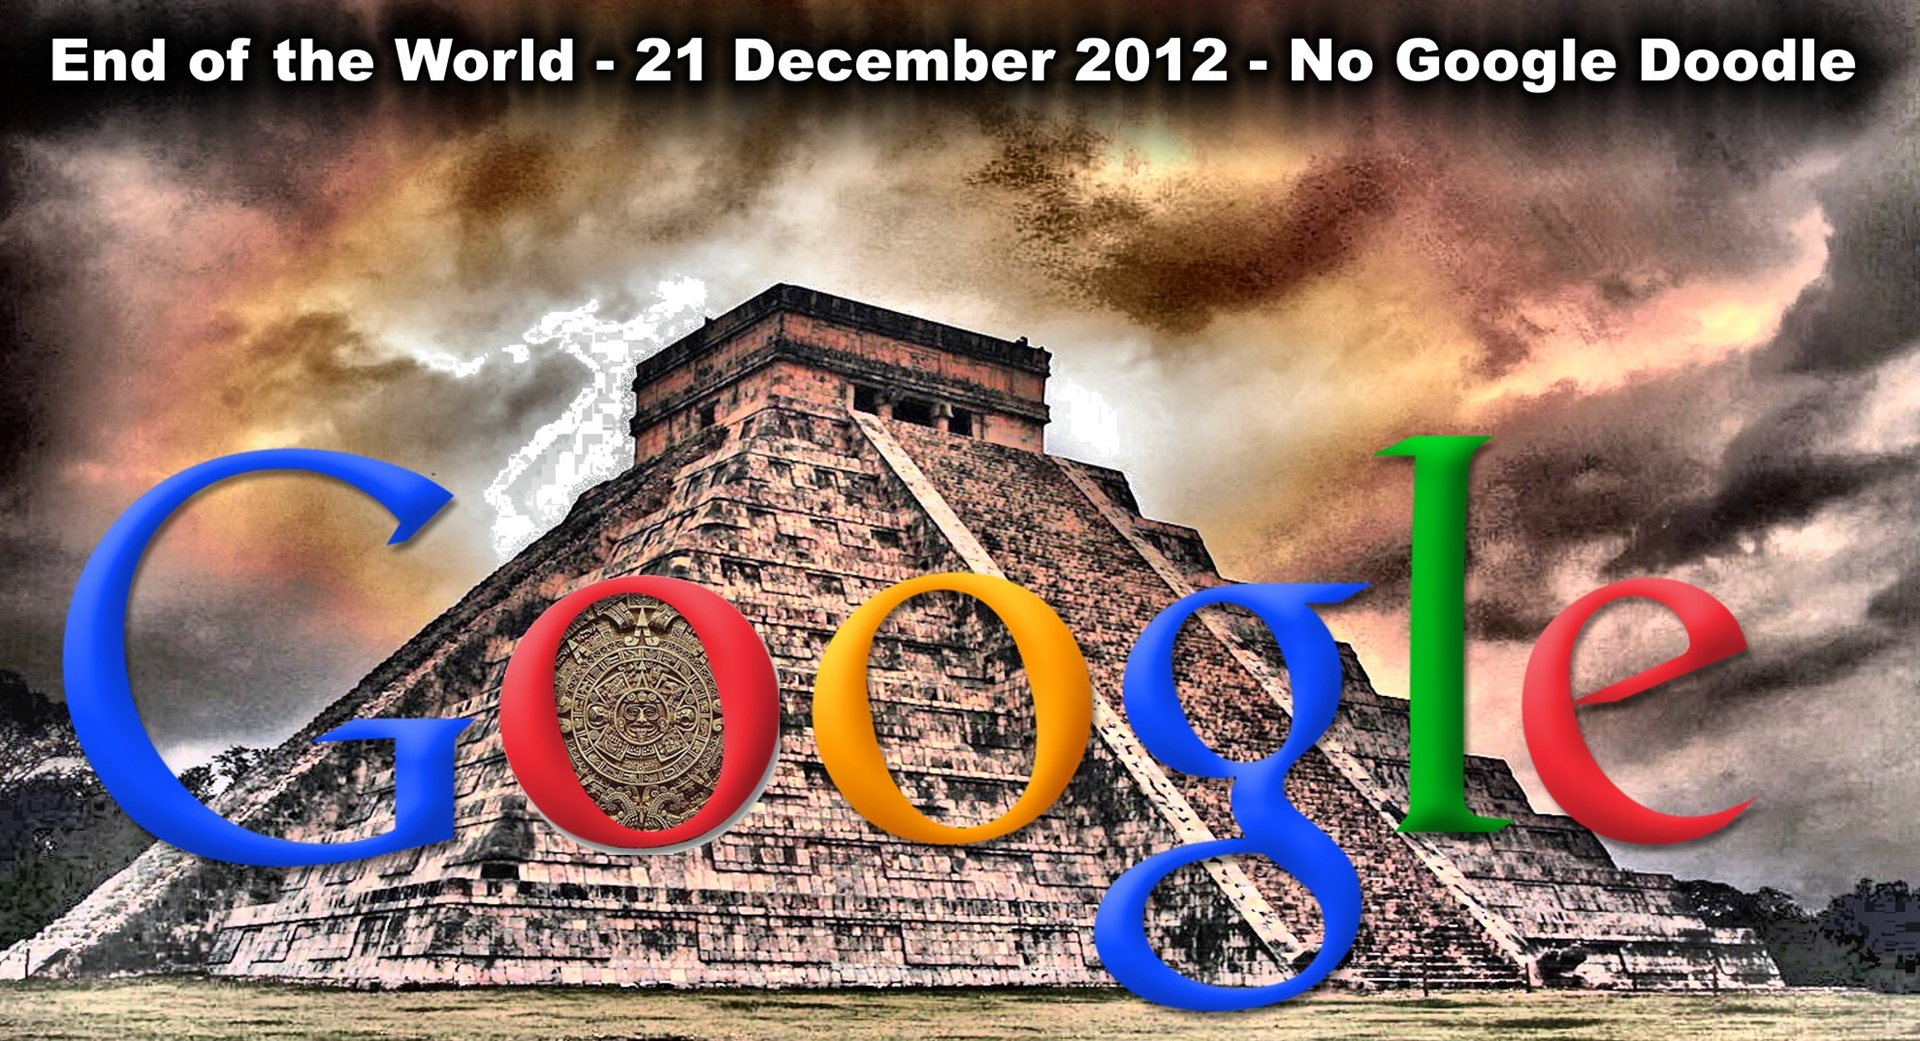 end of the world Google Doodle